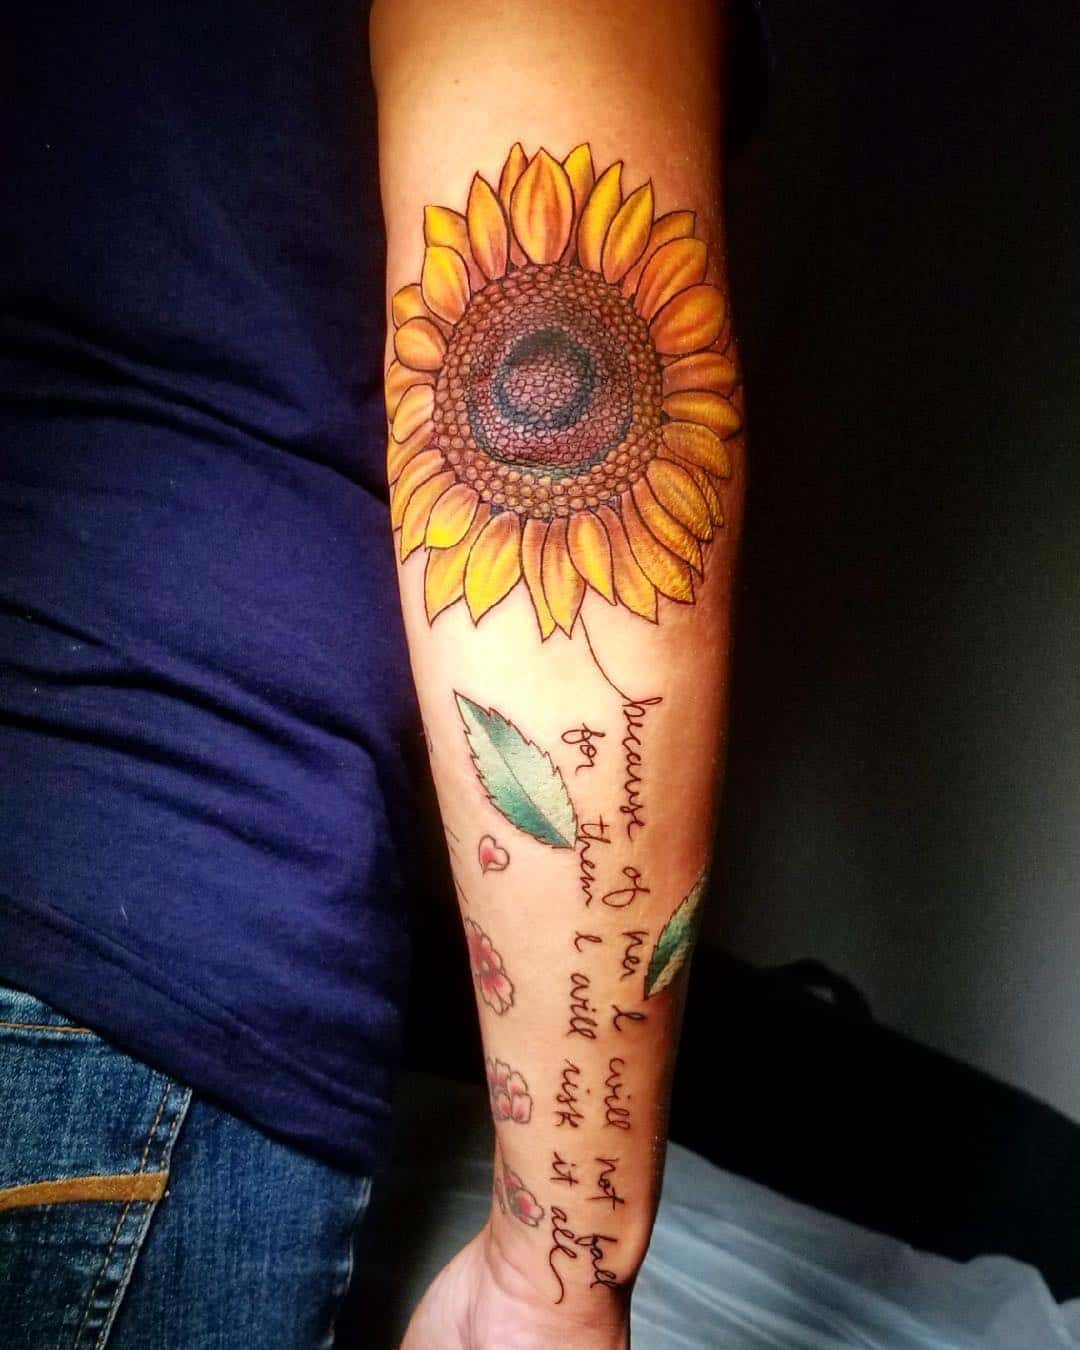 Sunflower And Daisy Tattoo: 144 Sunflower Tattoos That Will Brighten Up Your Life